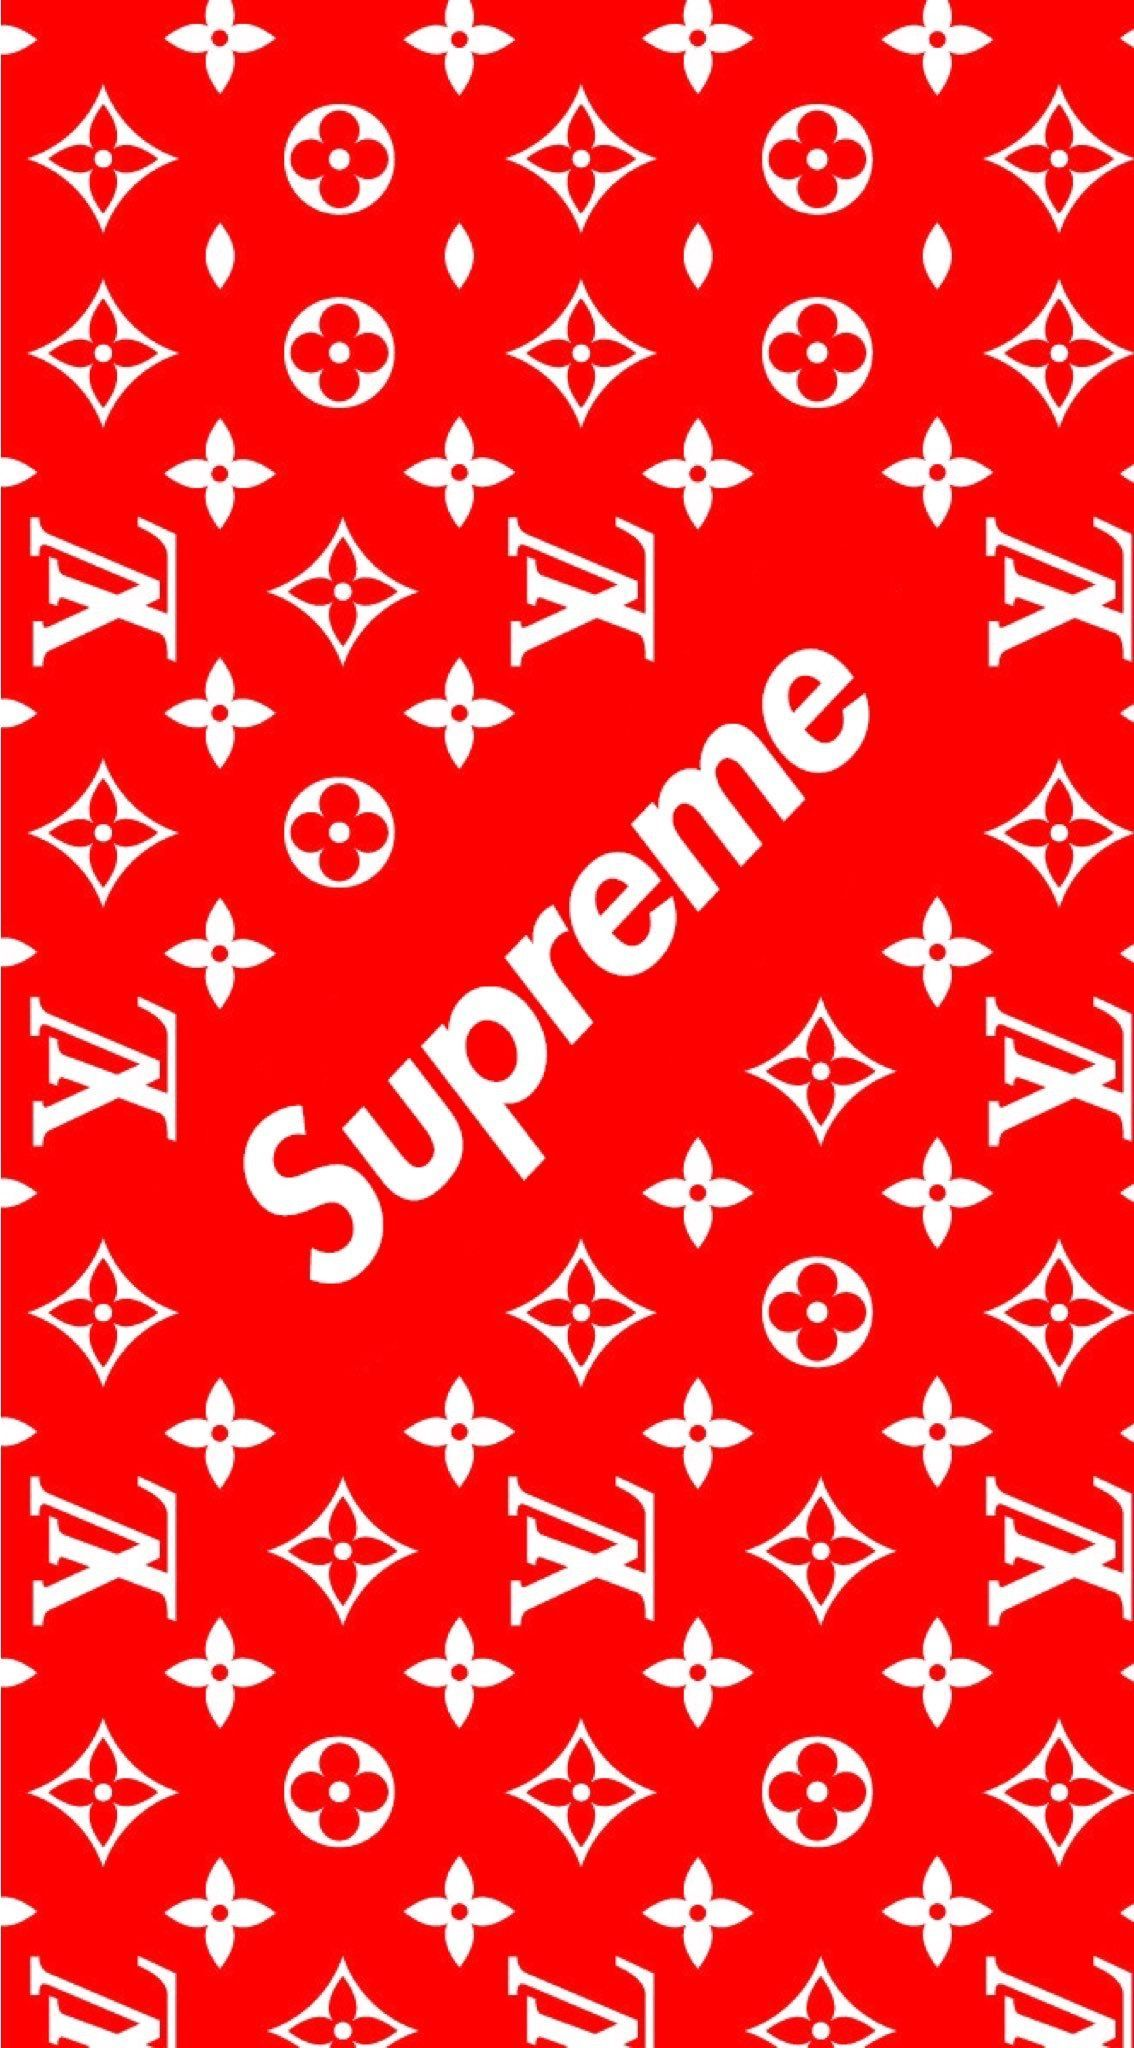 Supreme Wallpaper 4k Iphone X